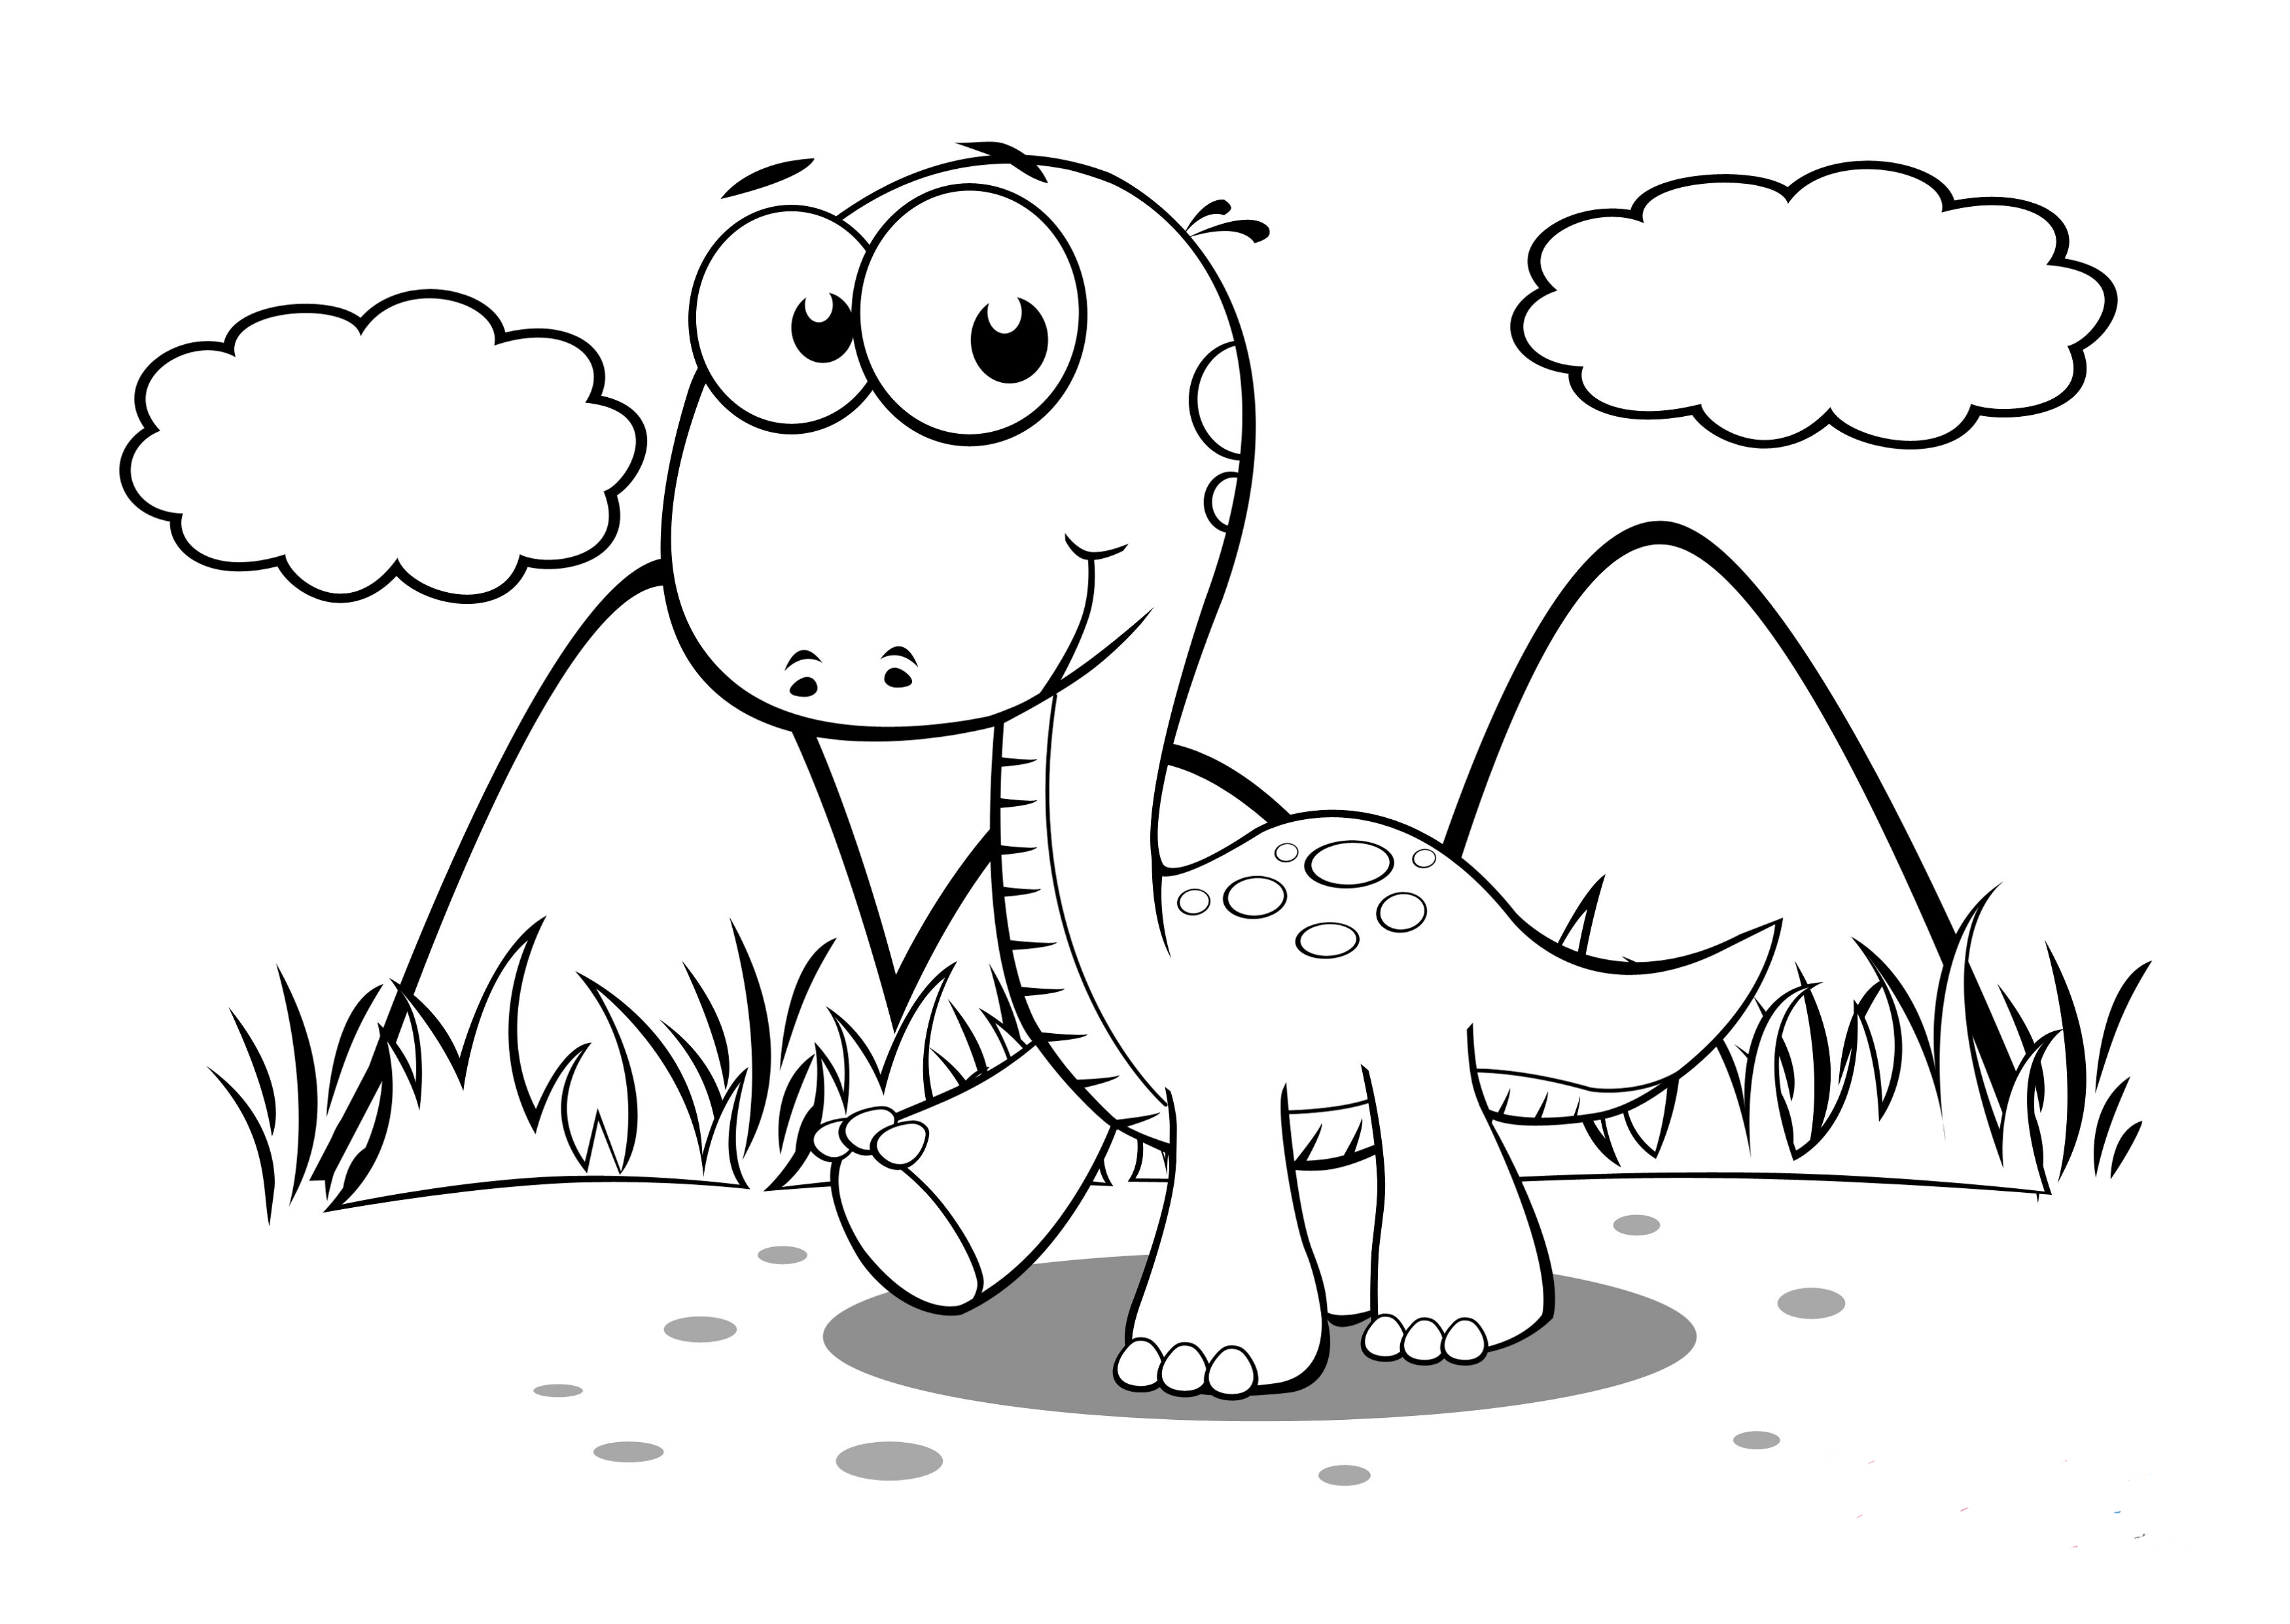 coloring pages dinosaurs jurassic world dinosaur coloring pages at getcoloringscom dinosaurs coloring pages